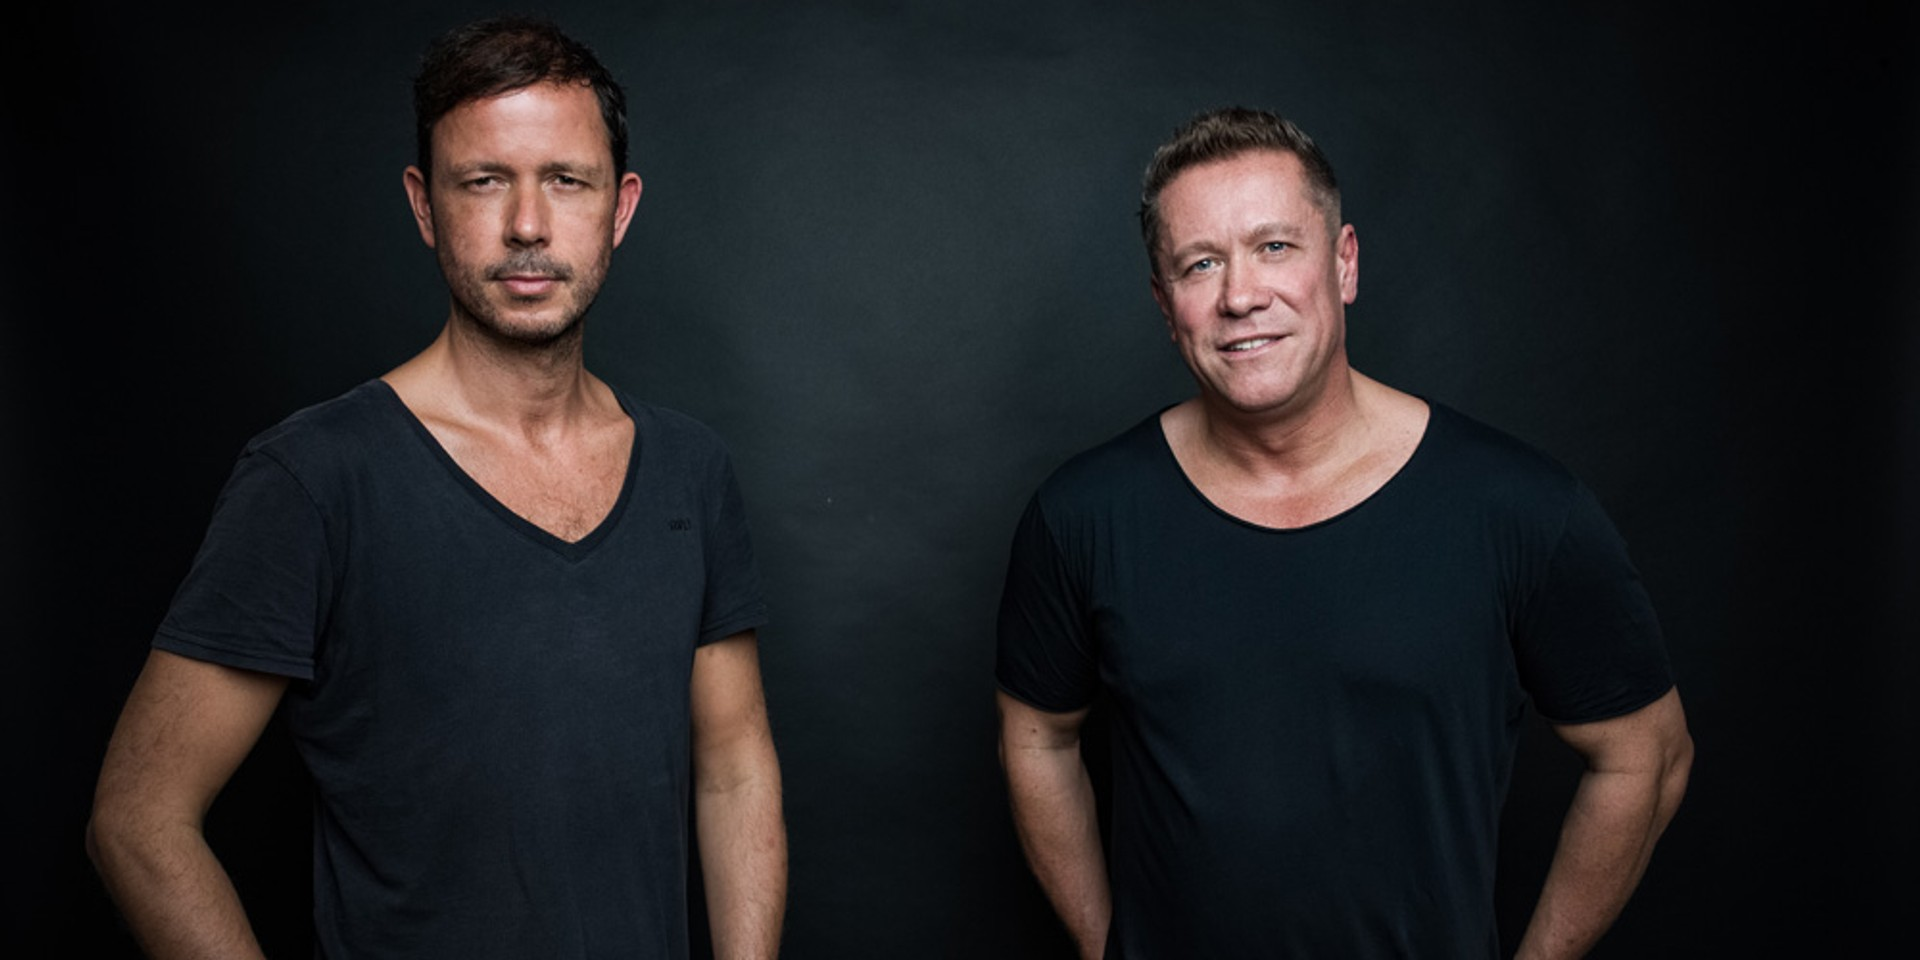 Cosmic Gate to perform in Singapore this April